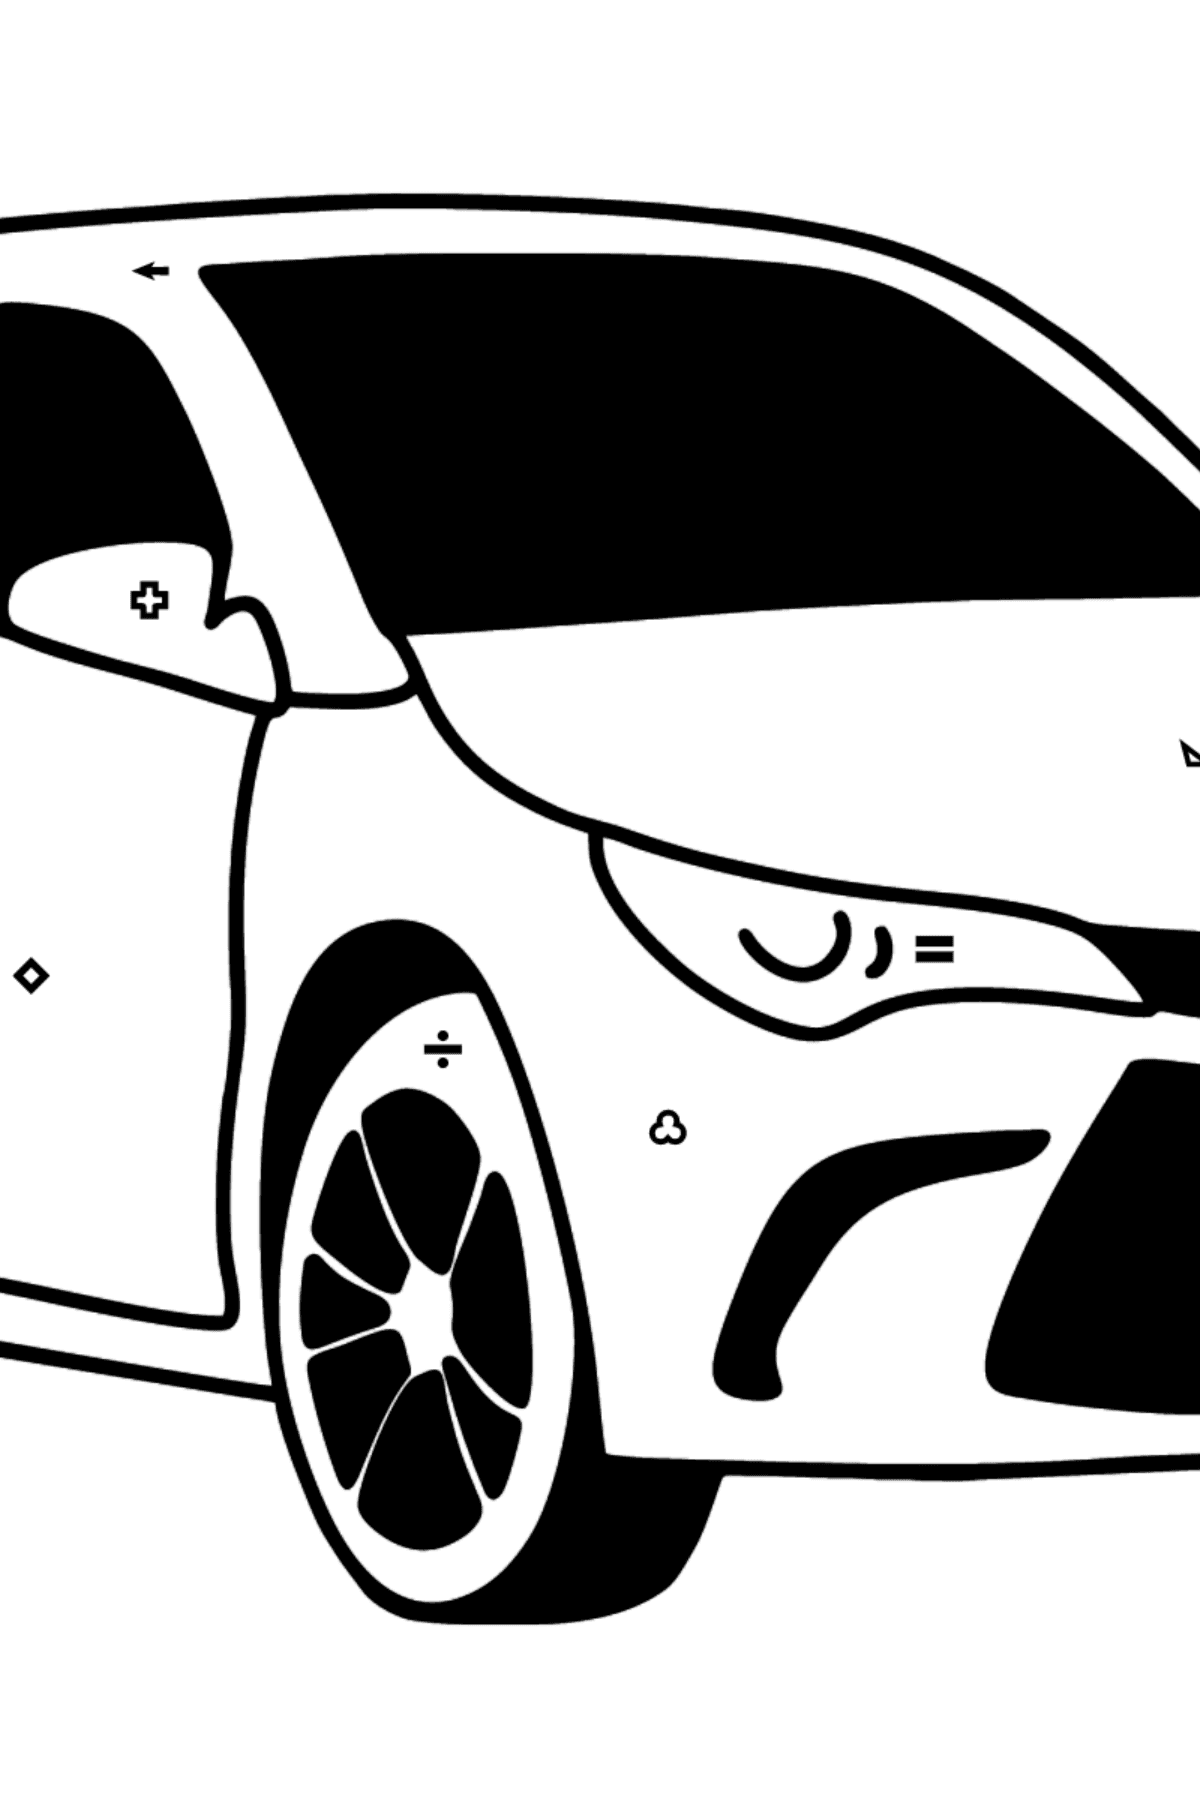 Toyota Camry coloring page - Coloring by Symbols and Geometric Shapes for Kids